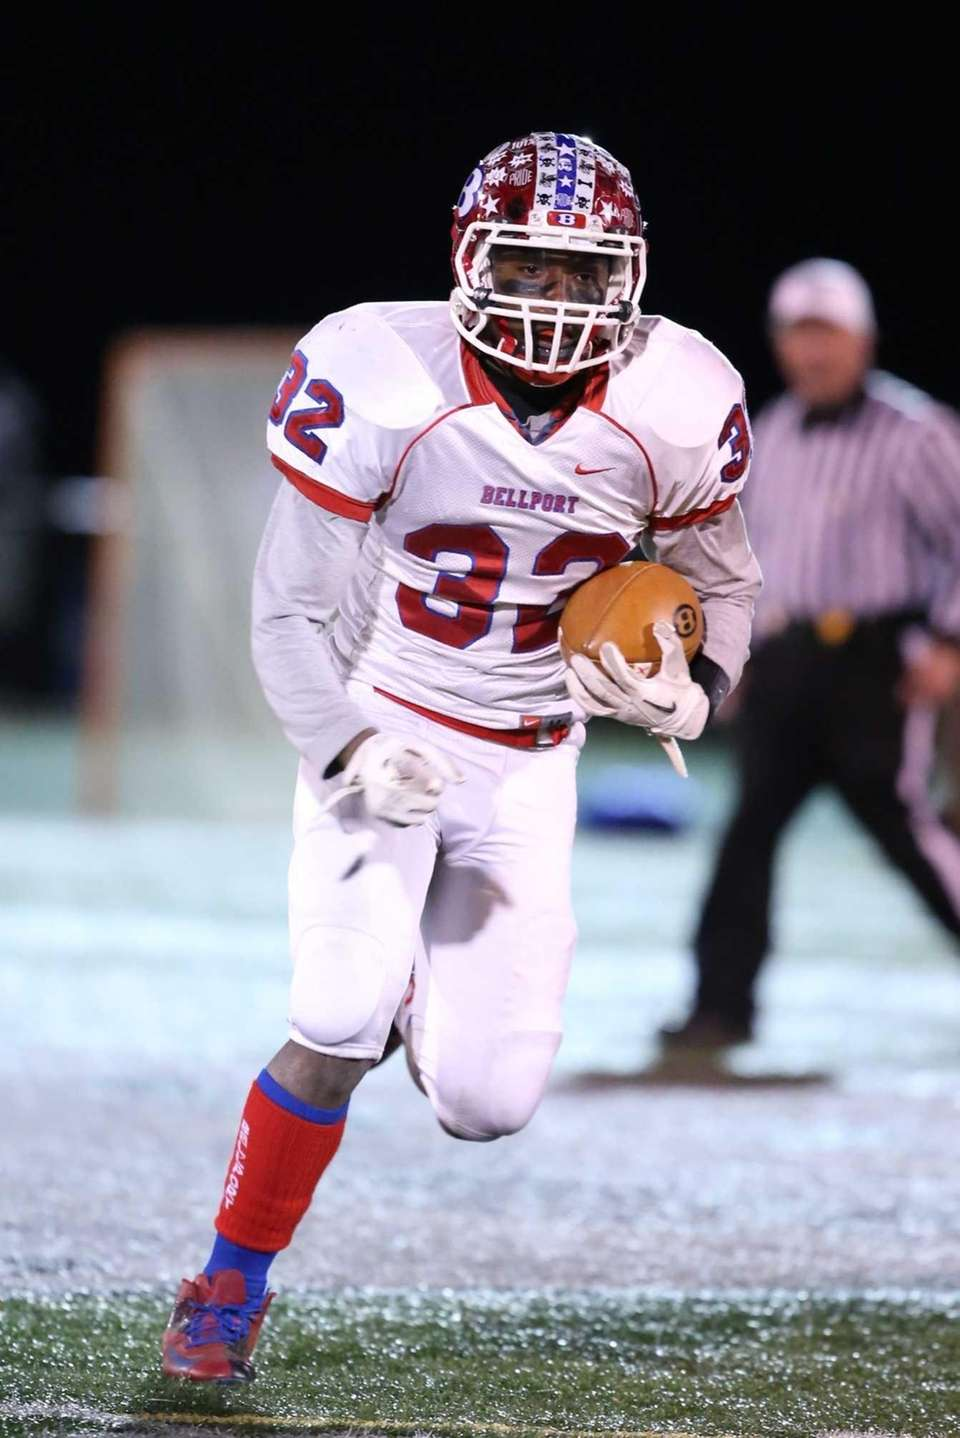 Bellport running back Joe Leon breaks a long